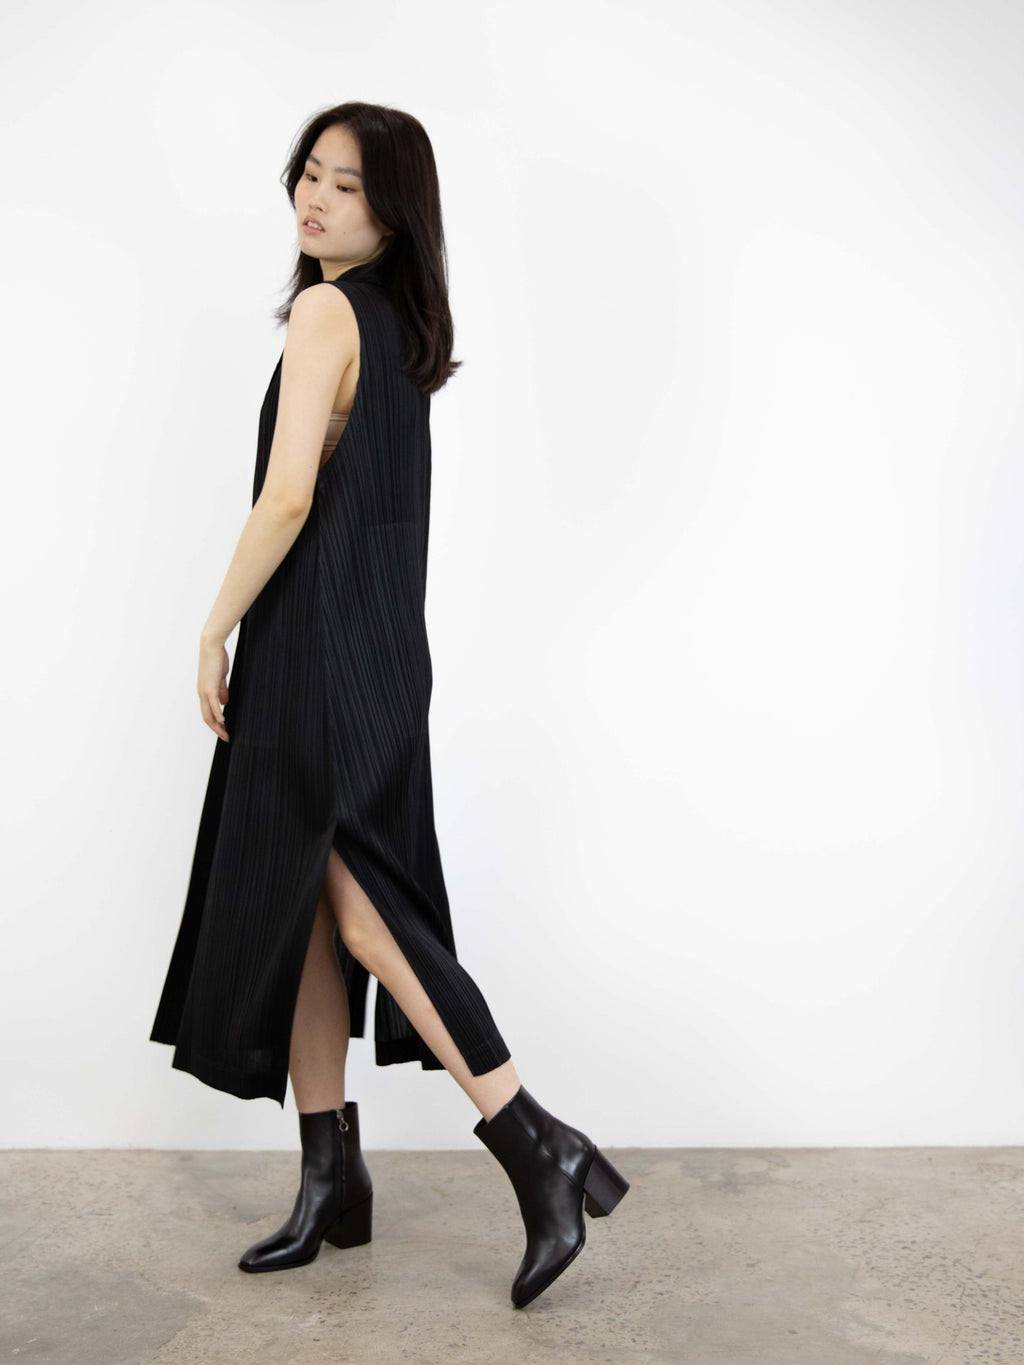 Light Mannish Sleeveless Coat - Black